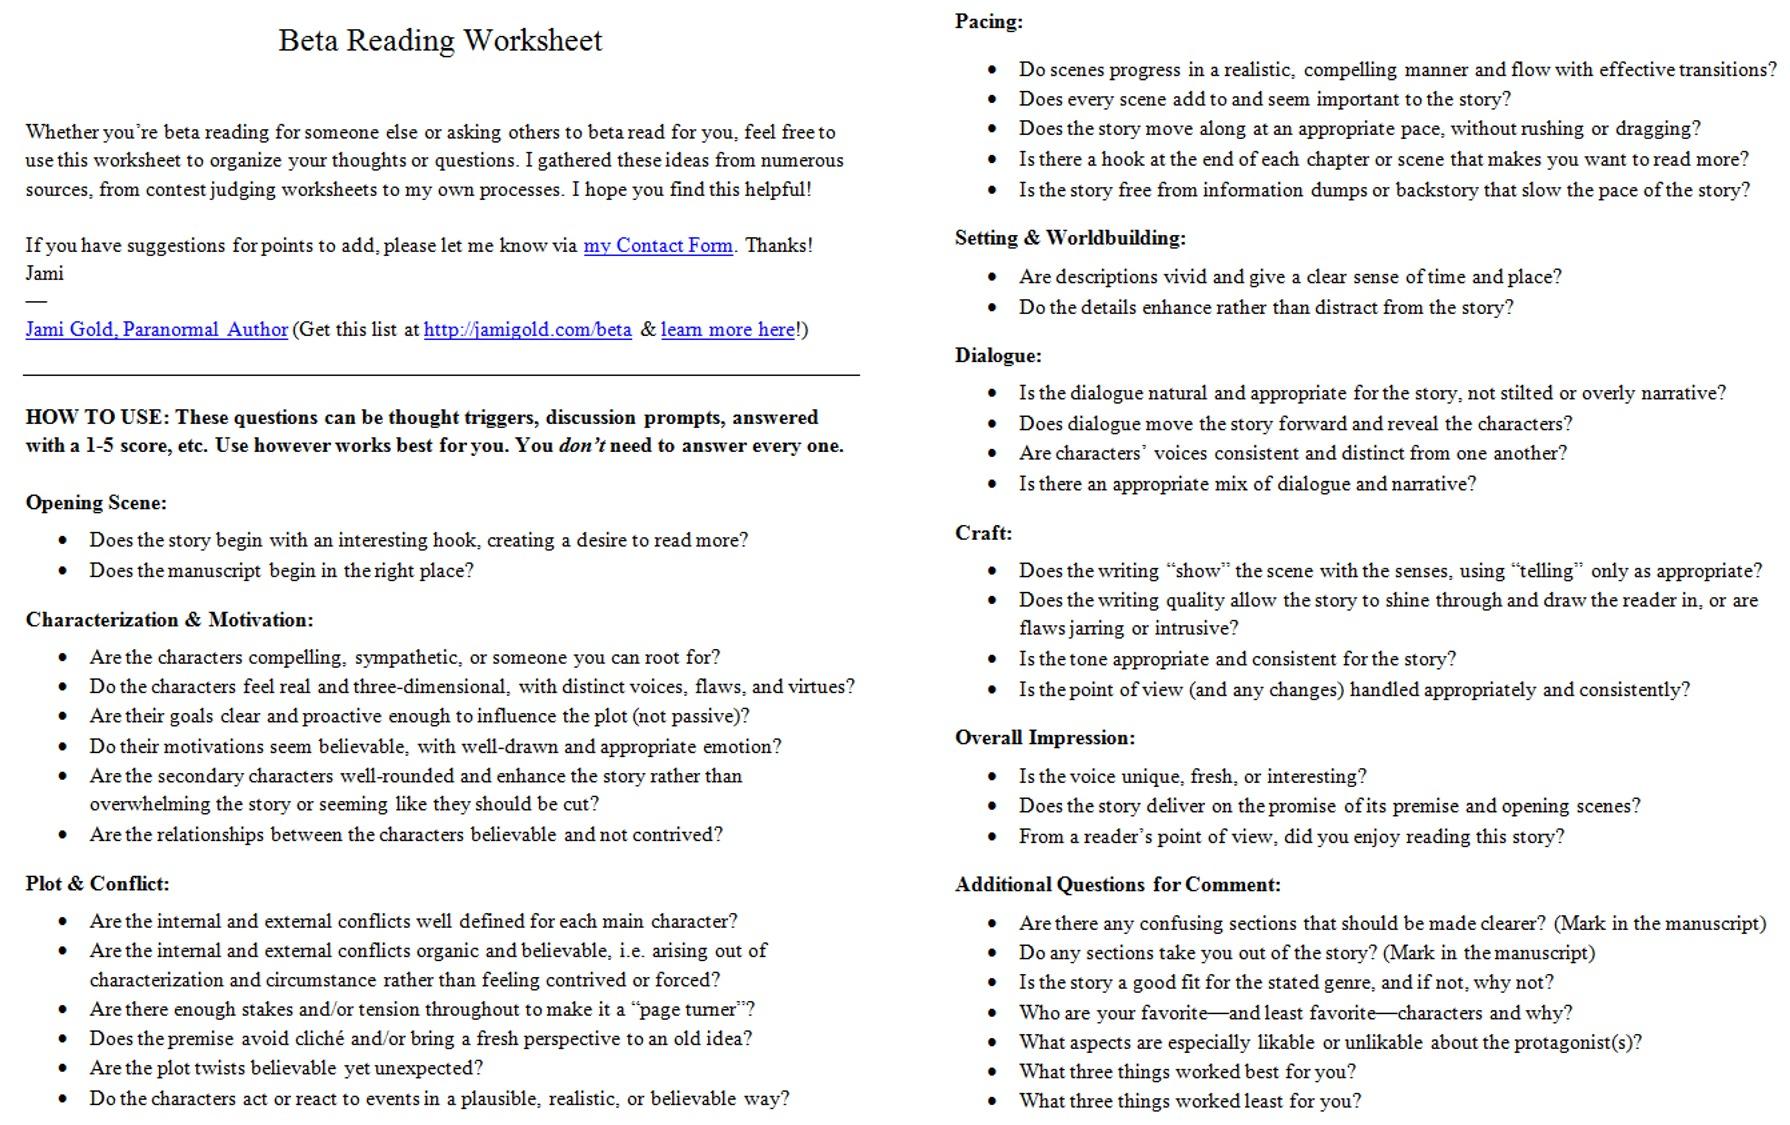 Aldiablosus  Winning Worksheets For Writers  Jami Gold Paranormal Author With Handsome Screen Shot Of The Twopage Beta Reading Worksheet With Amusing Digraph Worksheets Kindergarten Also Worksheet On Graphing Inequalities In Addition Math Holiday Worksheets And Dividing Fractions Practice Worksheet As Well As  Senses Kindergarten Worksheets Additionally Multiplications Worksheets For Rd Grade From Jamigoldcom With Aldiablosus  Handsome Worksheets For Writers  Jami Gold Paranormal Author With Amusing Screen Shot Of The Twopage Beta Reading Worksheet And Winning Digraph Worksheets Kindergarten Also Worksheet On Graphing Inequalities In Addition Math Holiday Worksheets From Jamigoldcom